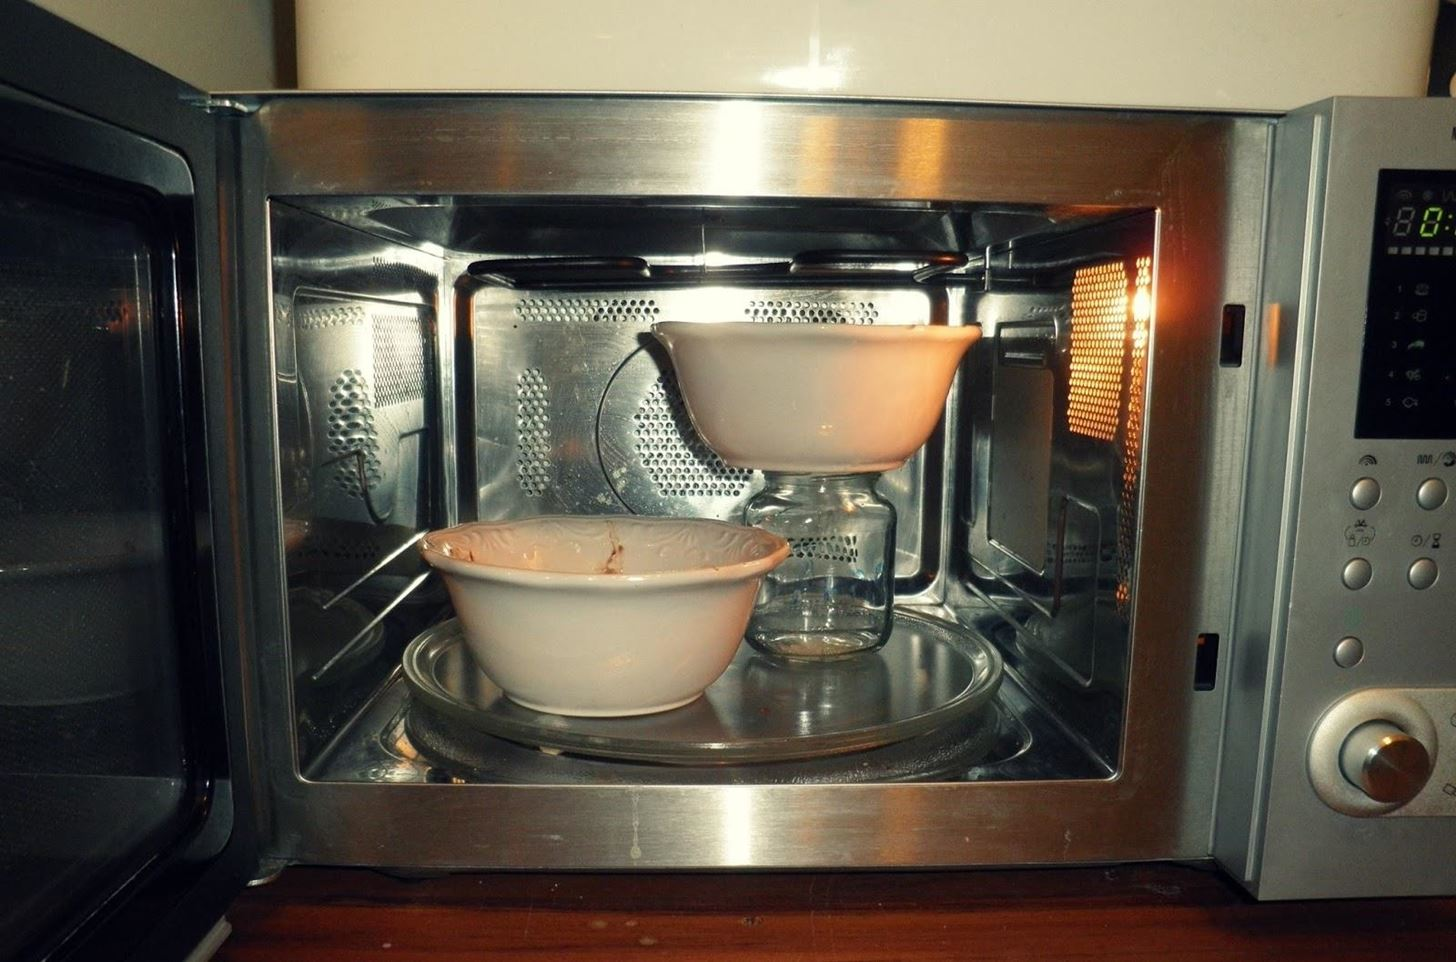 http://img.wonderhowto.com/img/99/88/63527982735567/0/10-tricks-you-need-use-for-better-tasting-food-from-your-microwave.w1456.jpg